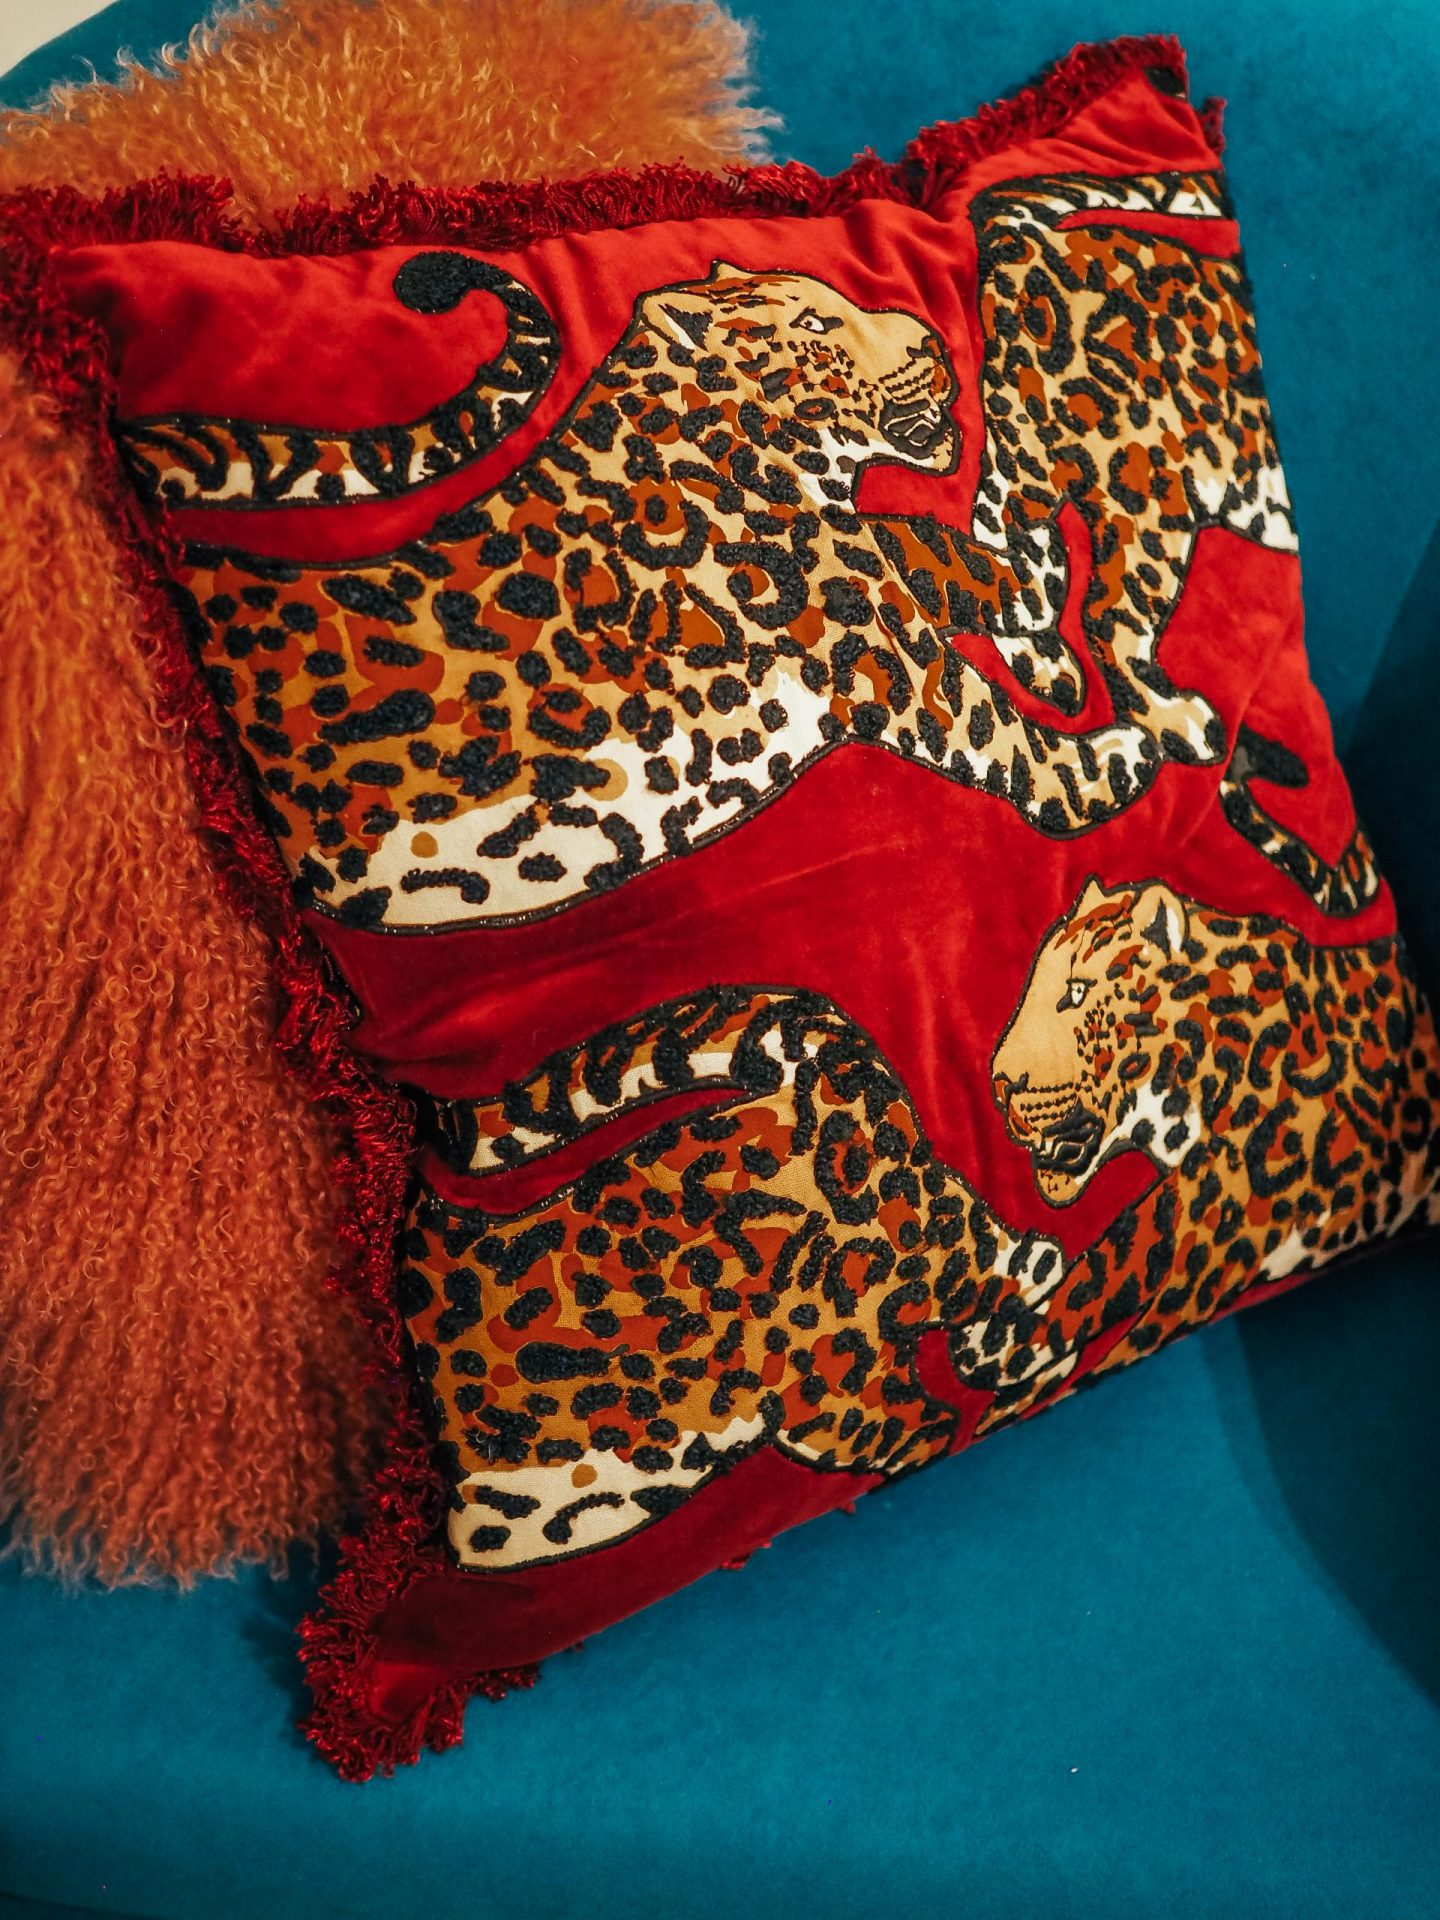 Abigail Ahern/EDITION - Multicoloured Leopard Embroidered Cushion